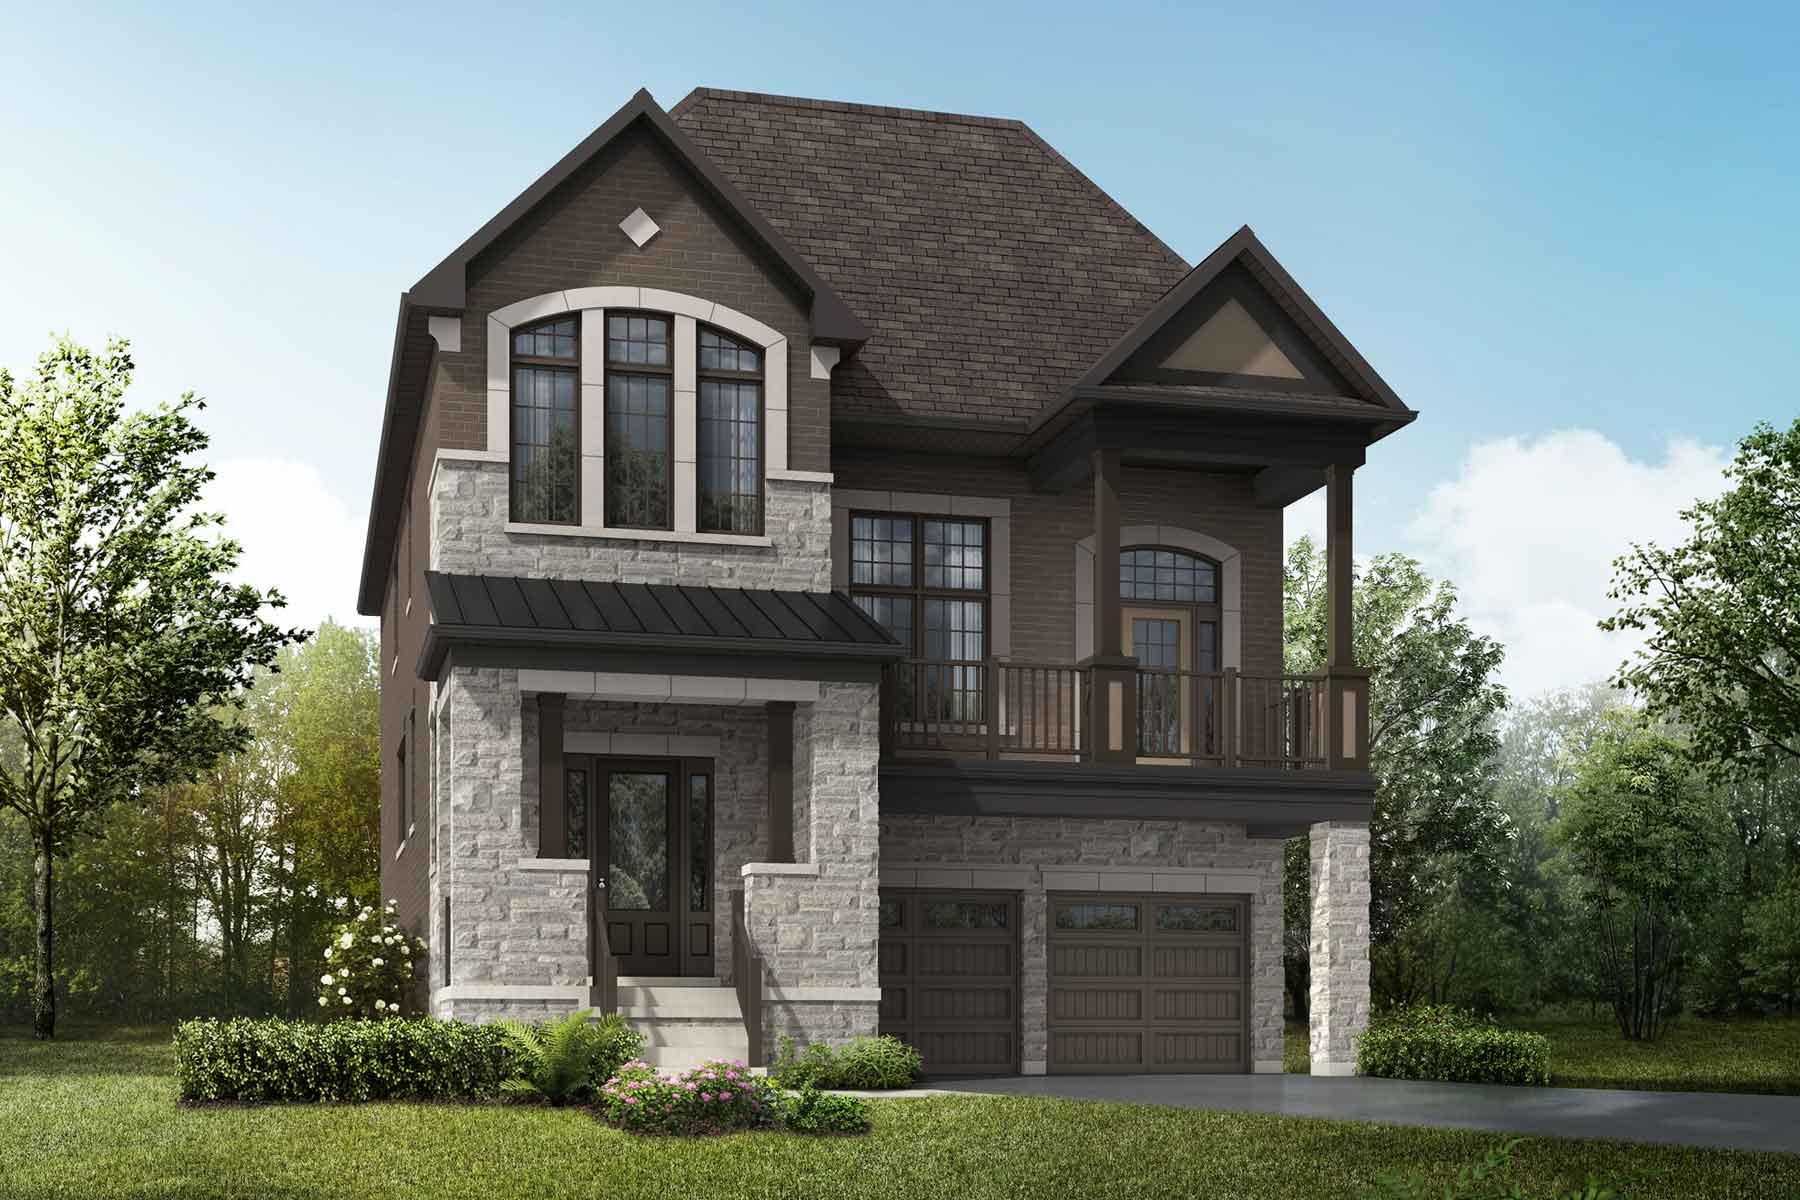 Orchid Plan englishmanor_springwater_orchid_main at Springwater in Markham Ontario by Mattamy Homes